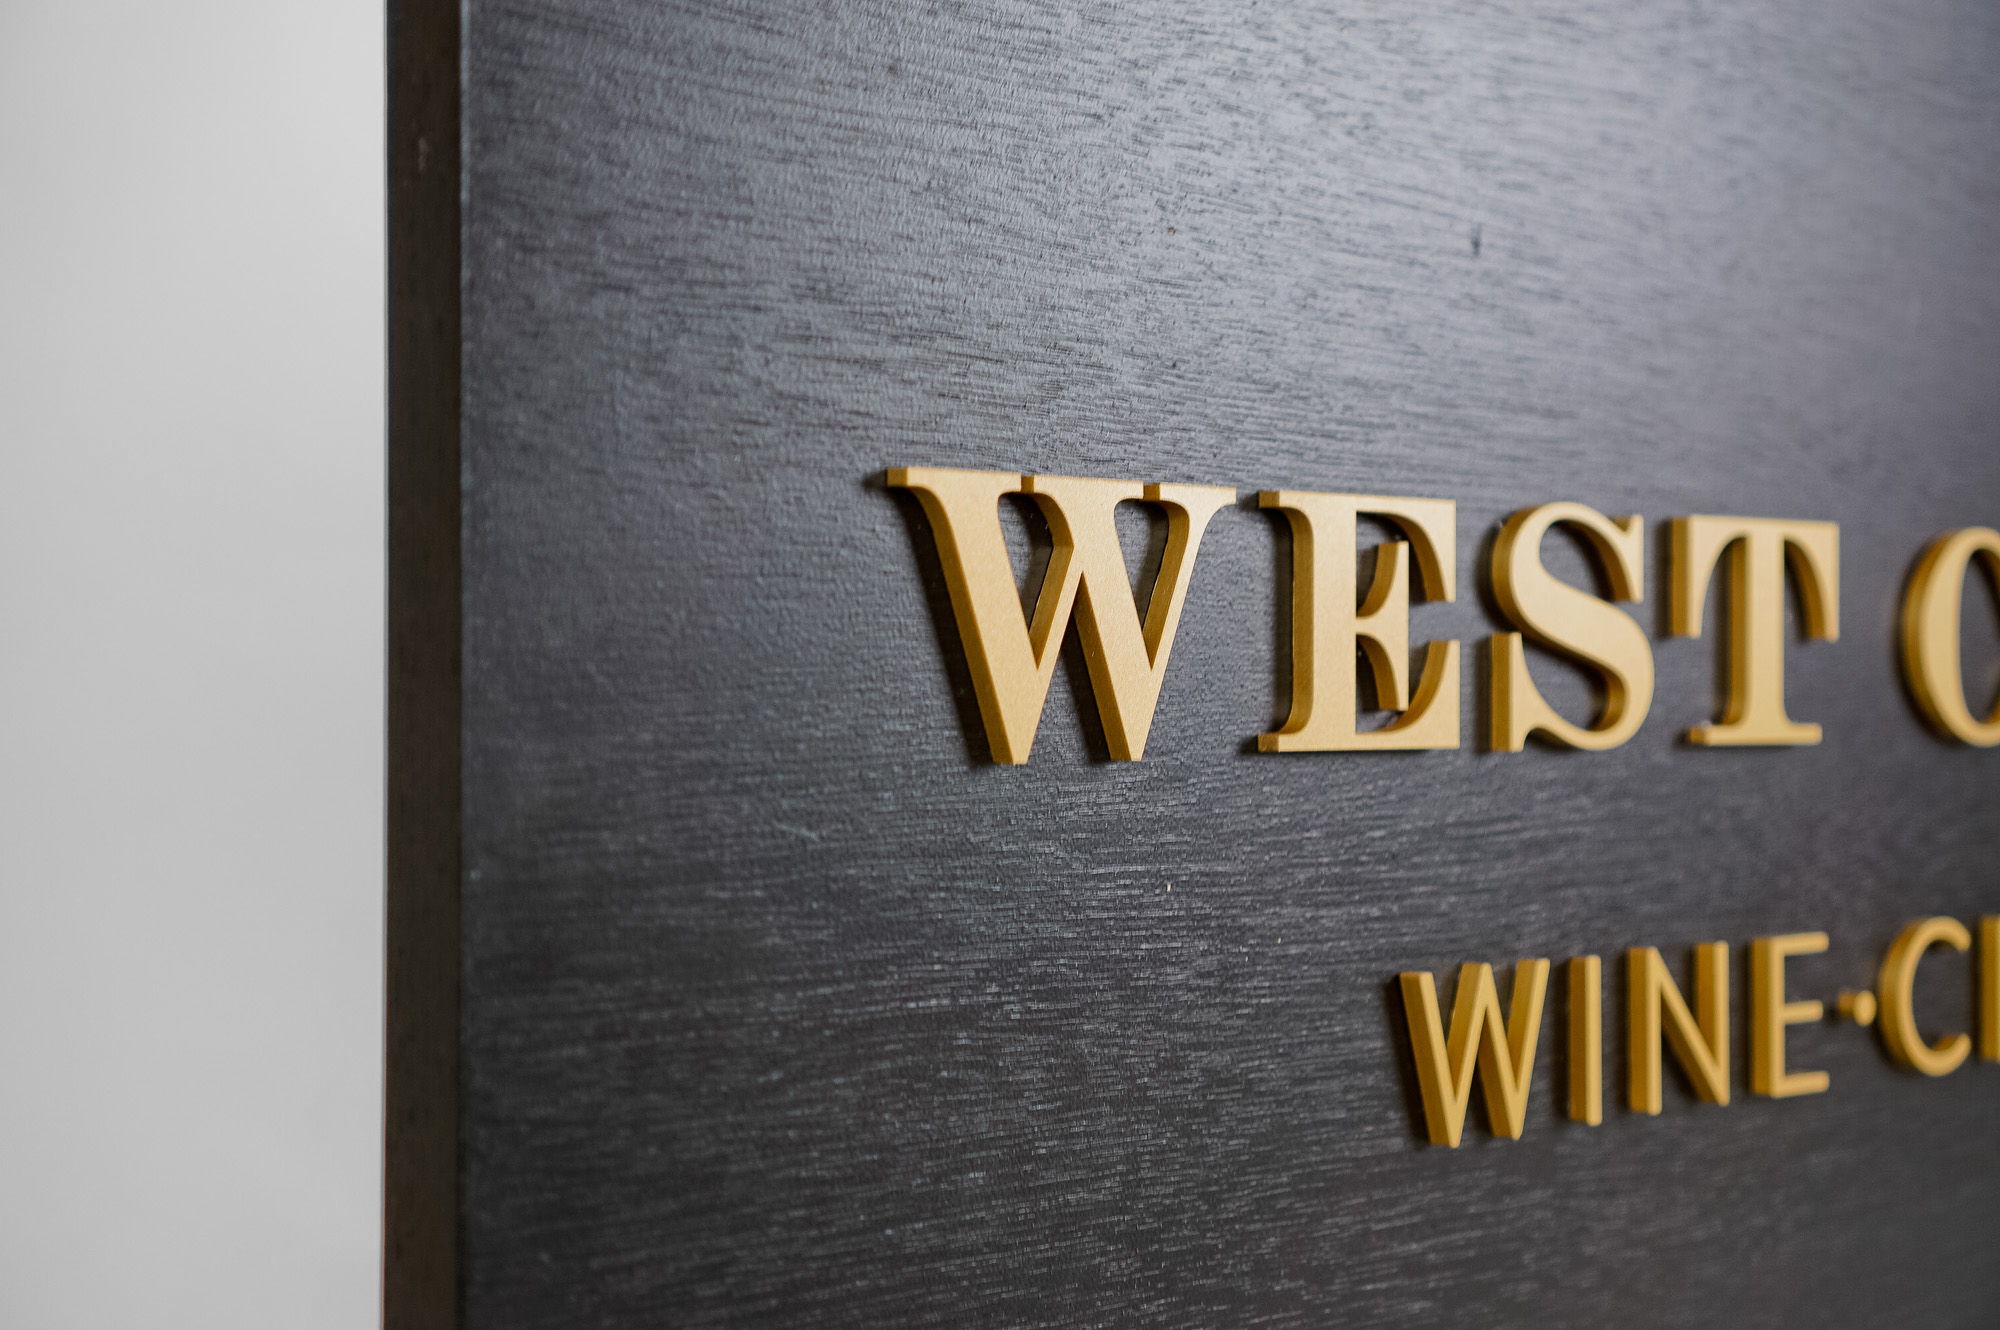 Outdoor hanging sign for West Coast Wine and Cheese, a San Francisco based bar and gastropub.